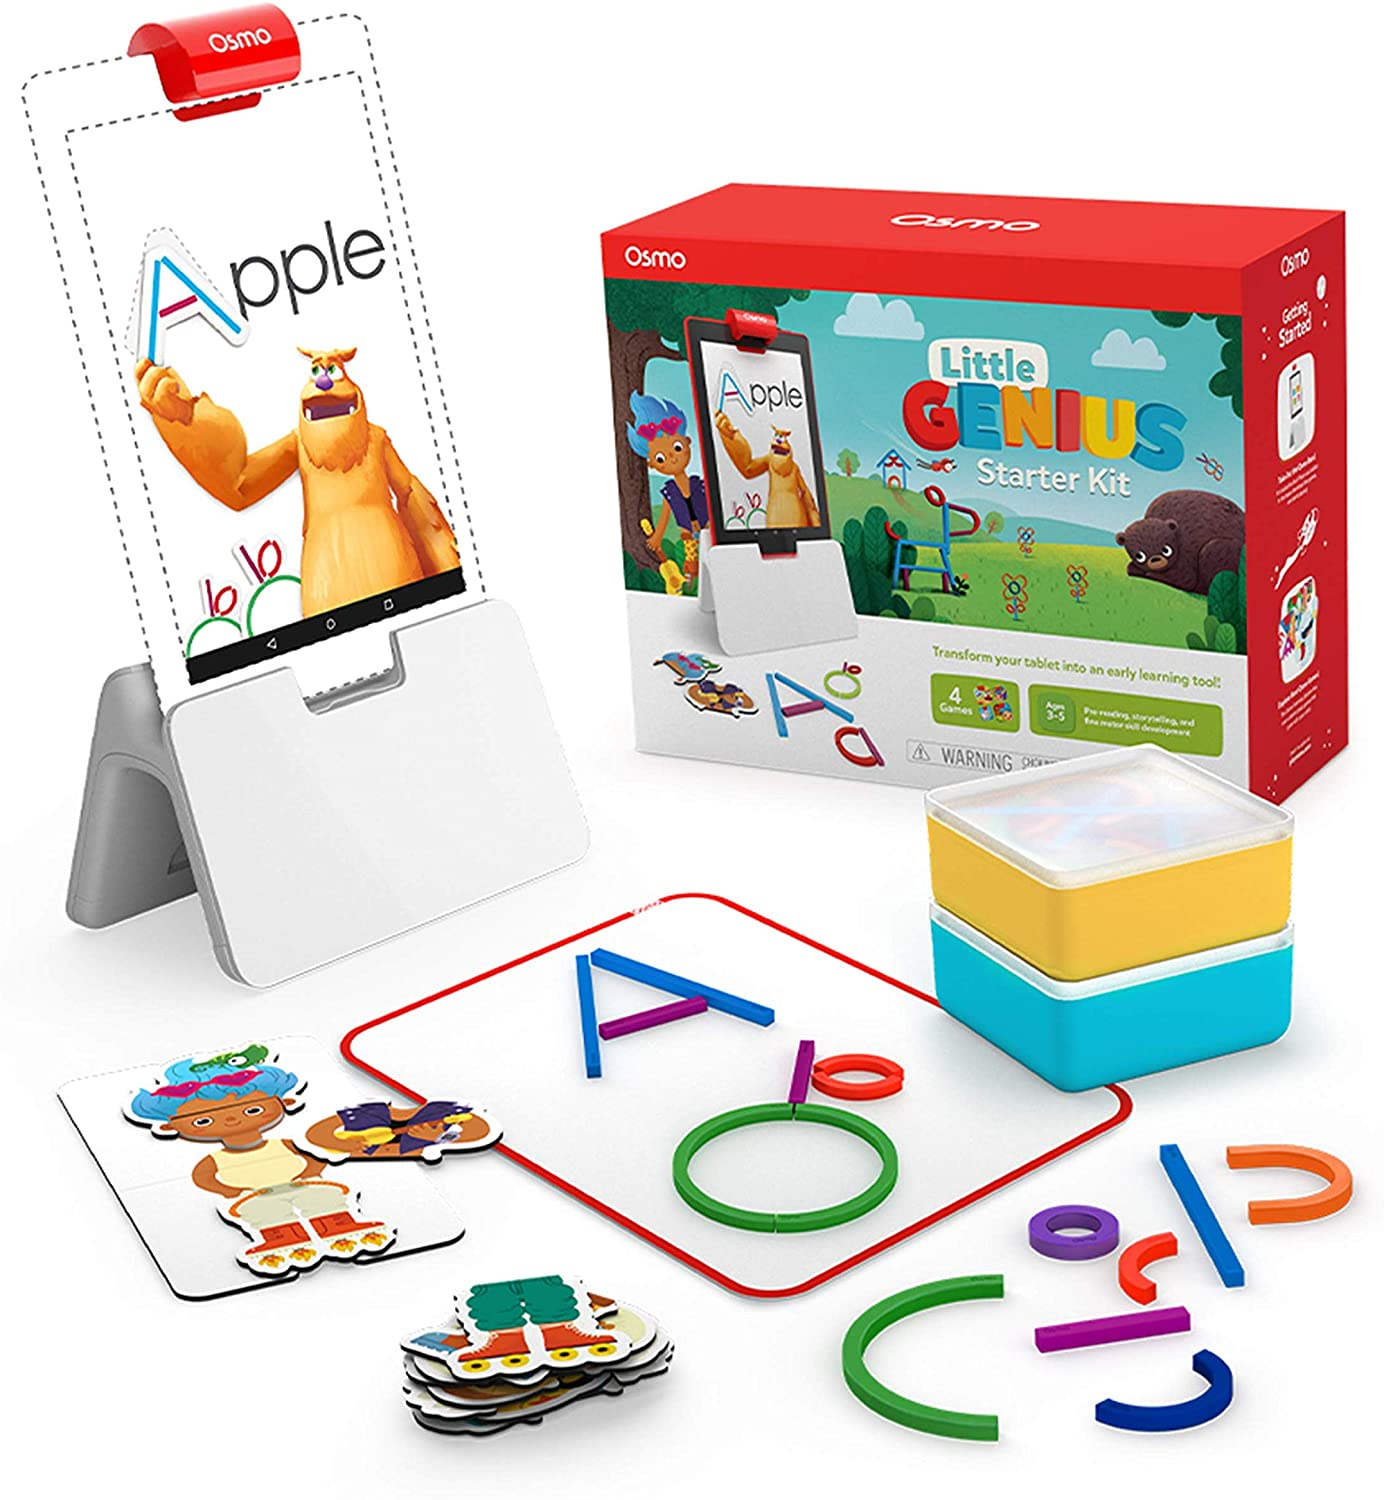 Geek Daily Deals 111220 Osmo Little Genius